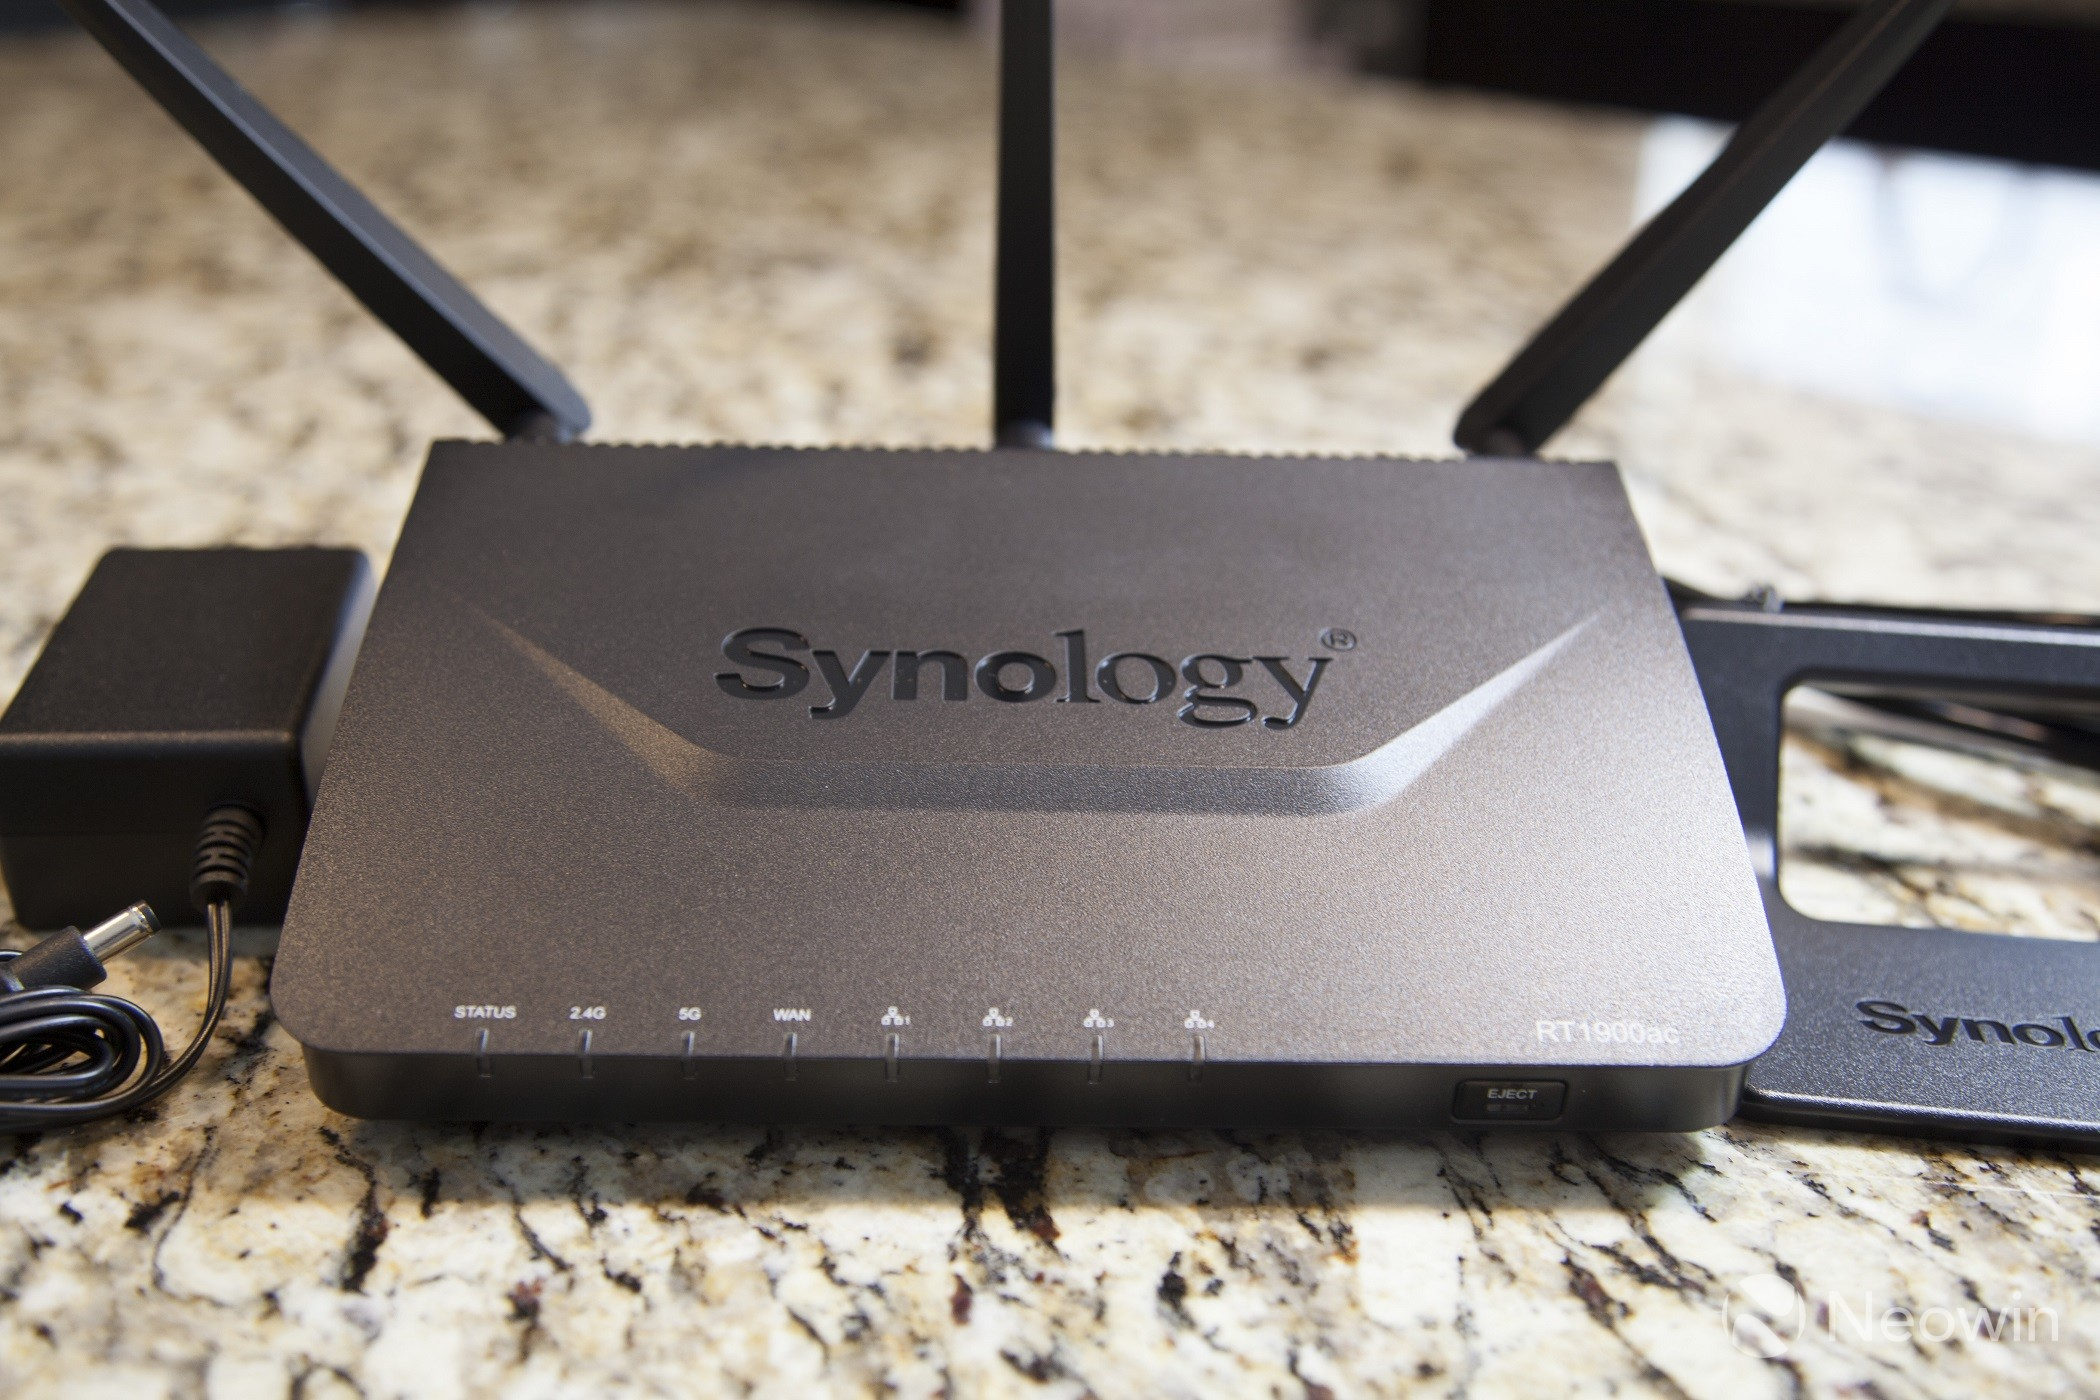 Not just storage anymore: the Synology RT1900ac home router